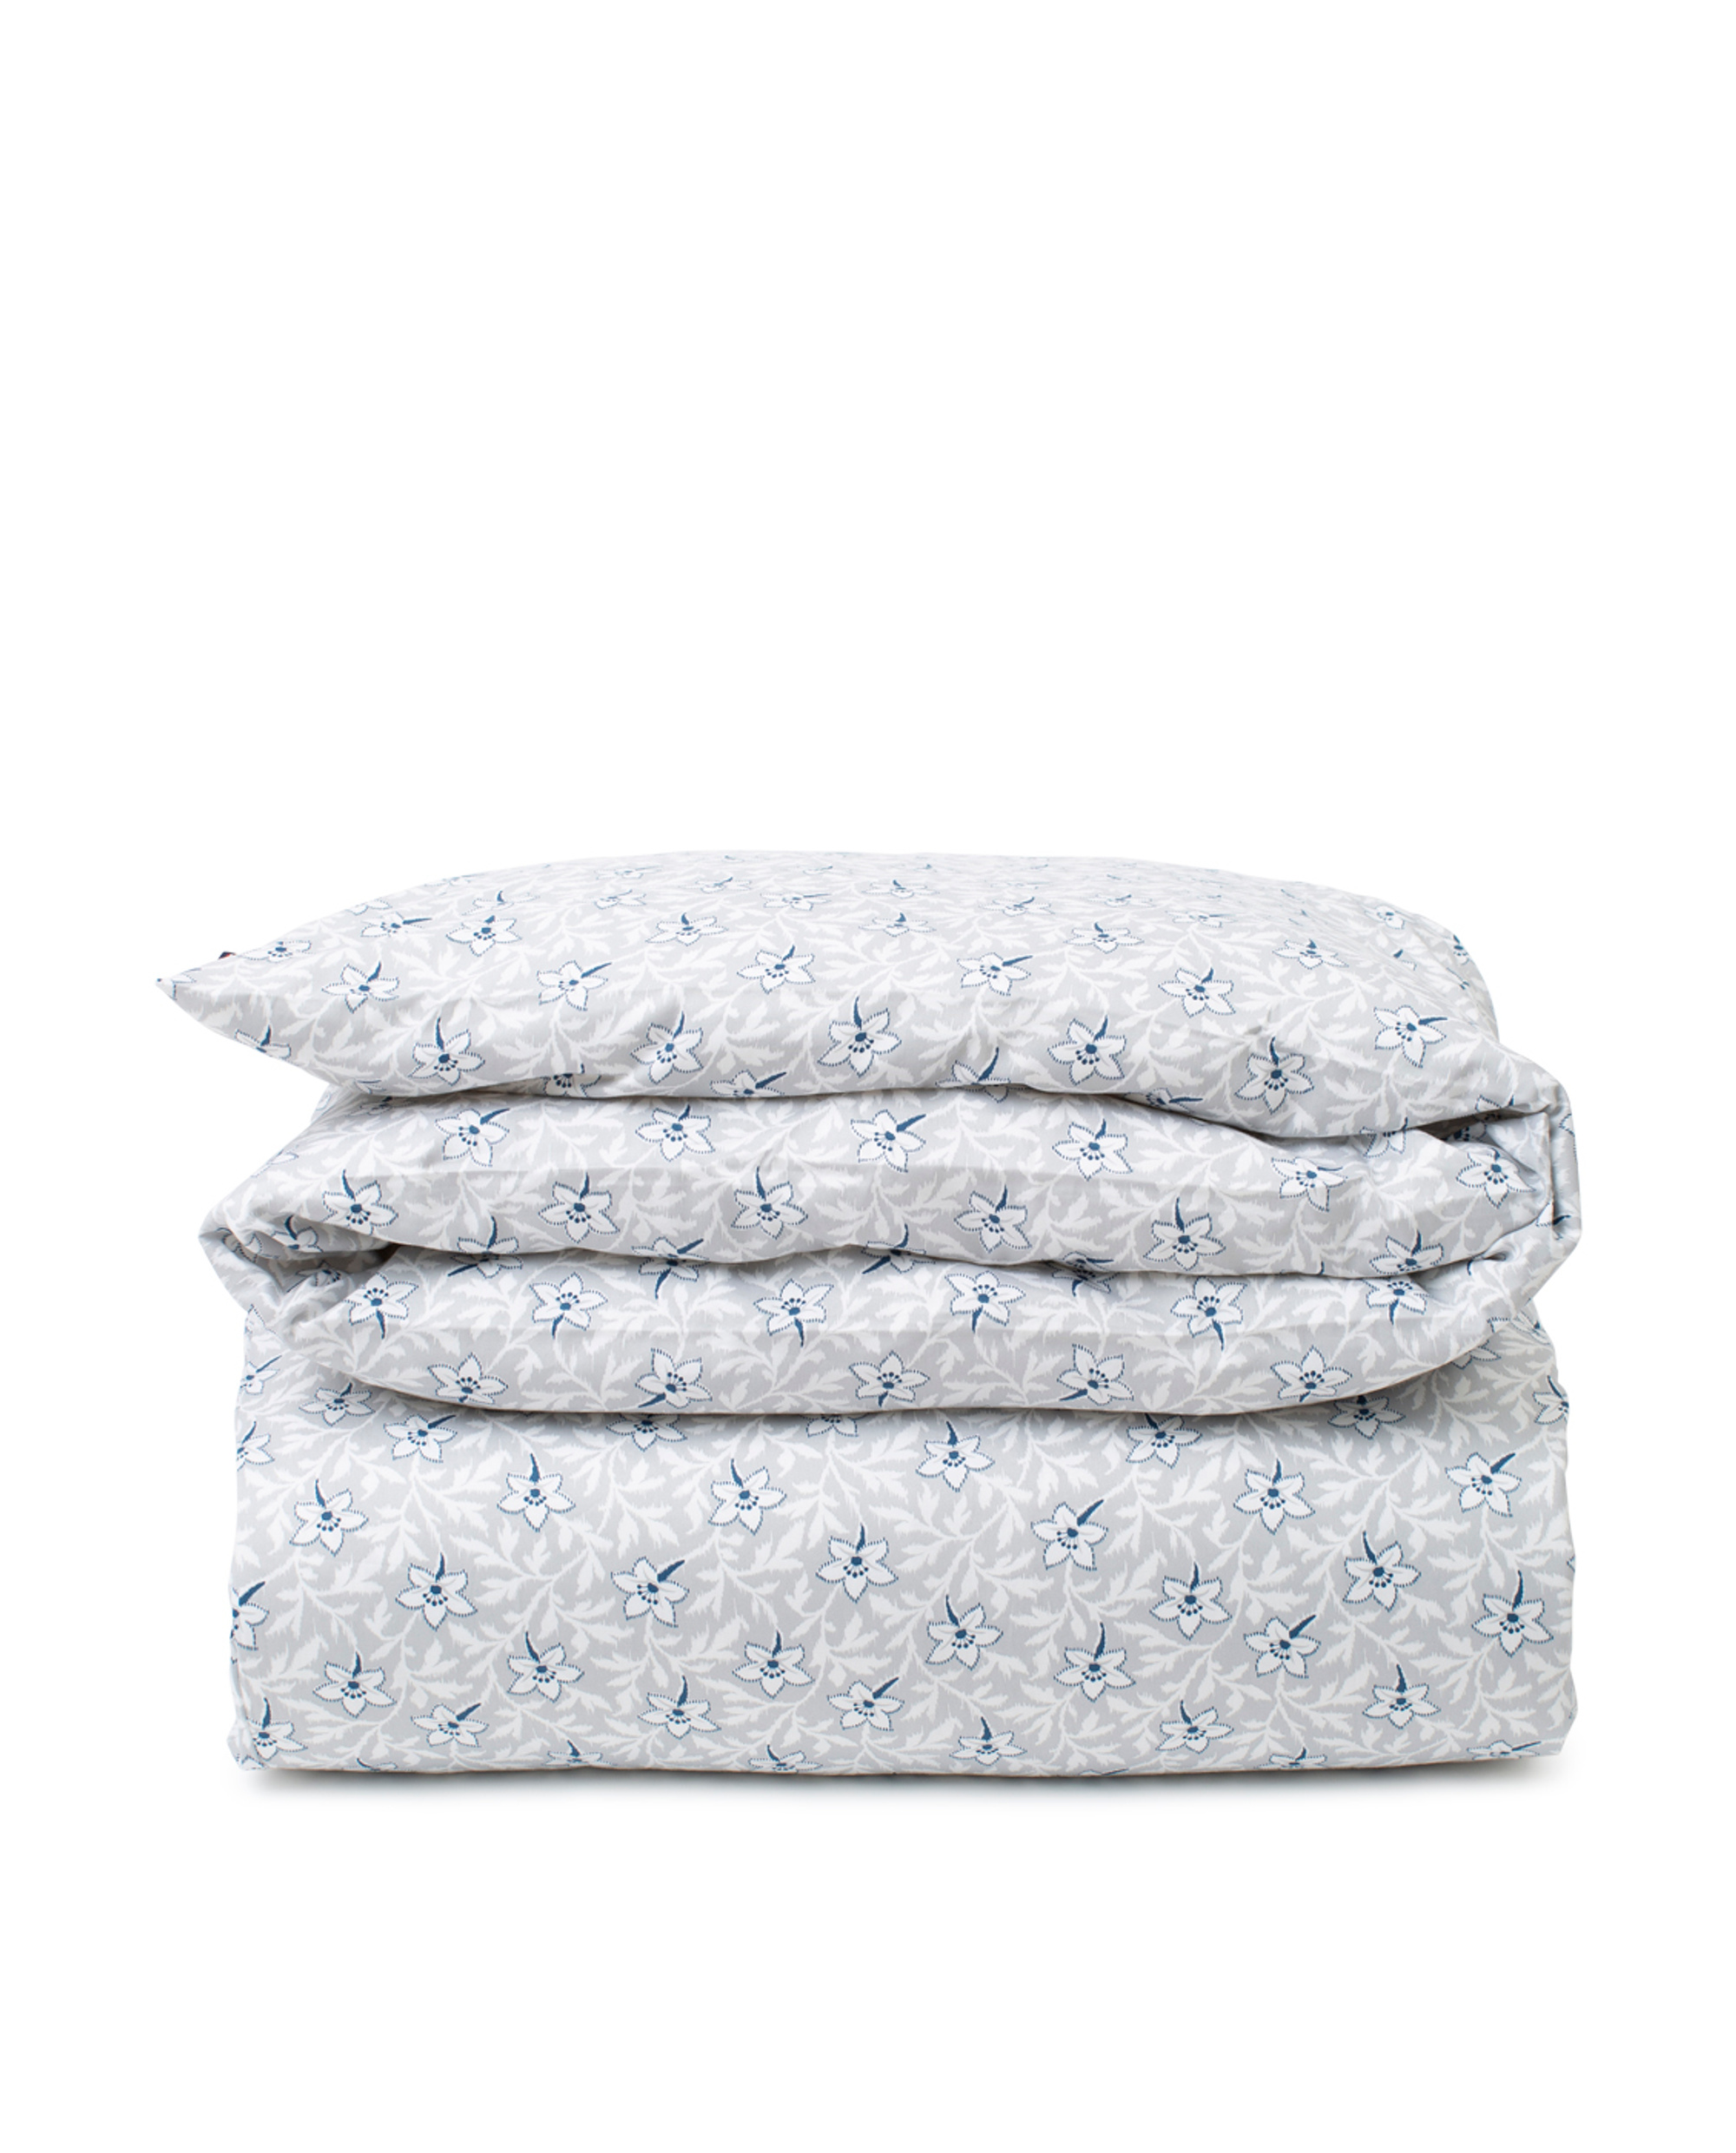 Light Gray/Blue Flower Print Cotton Sateen Duvet Cover